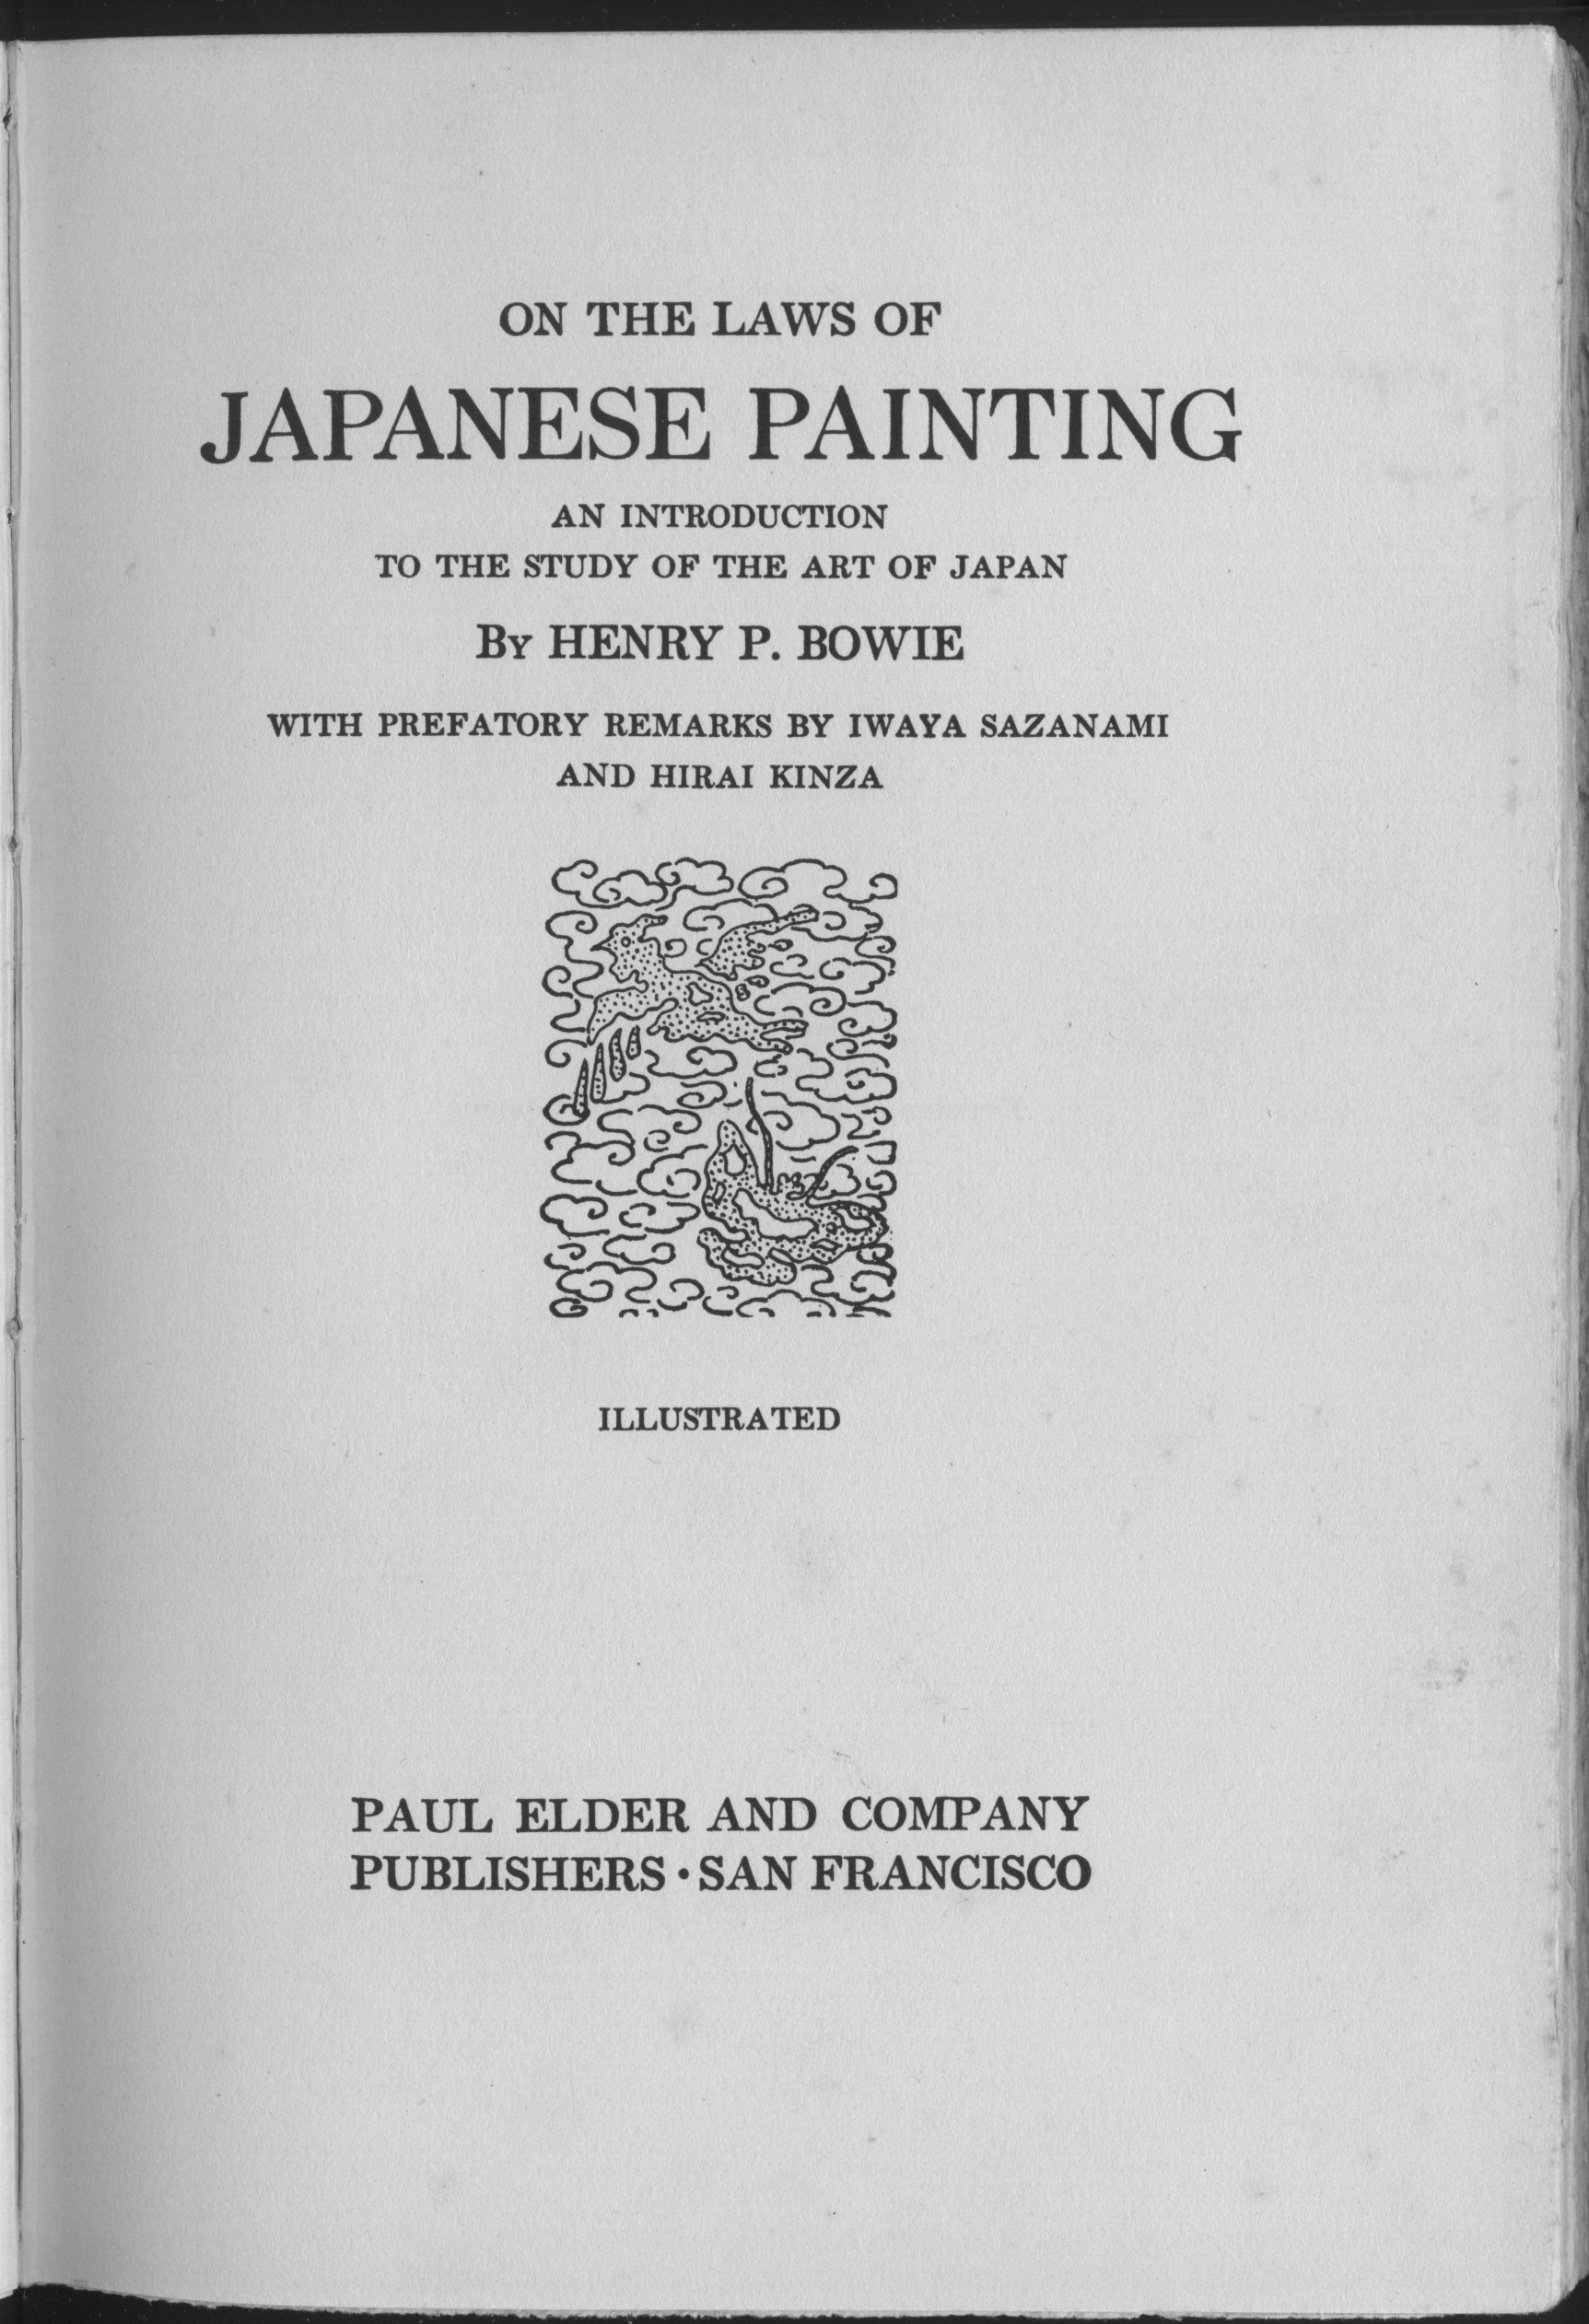 Paul Elder Amp Co On The Laws Of Japanese Painting 1911